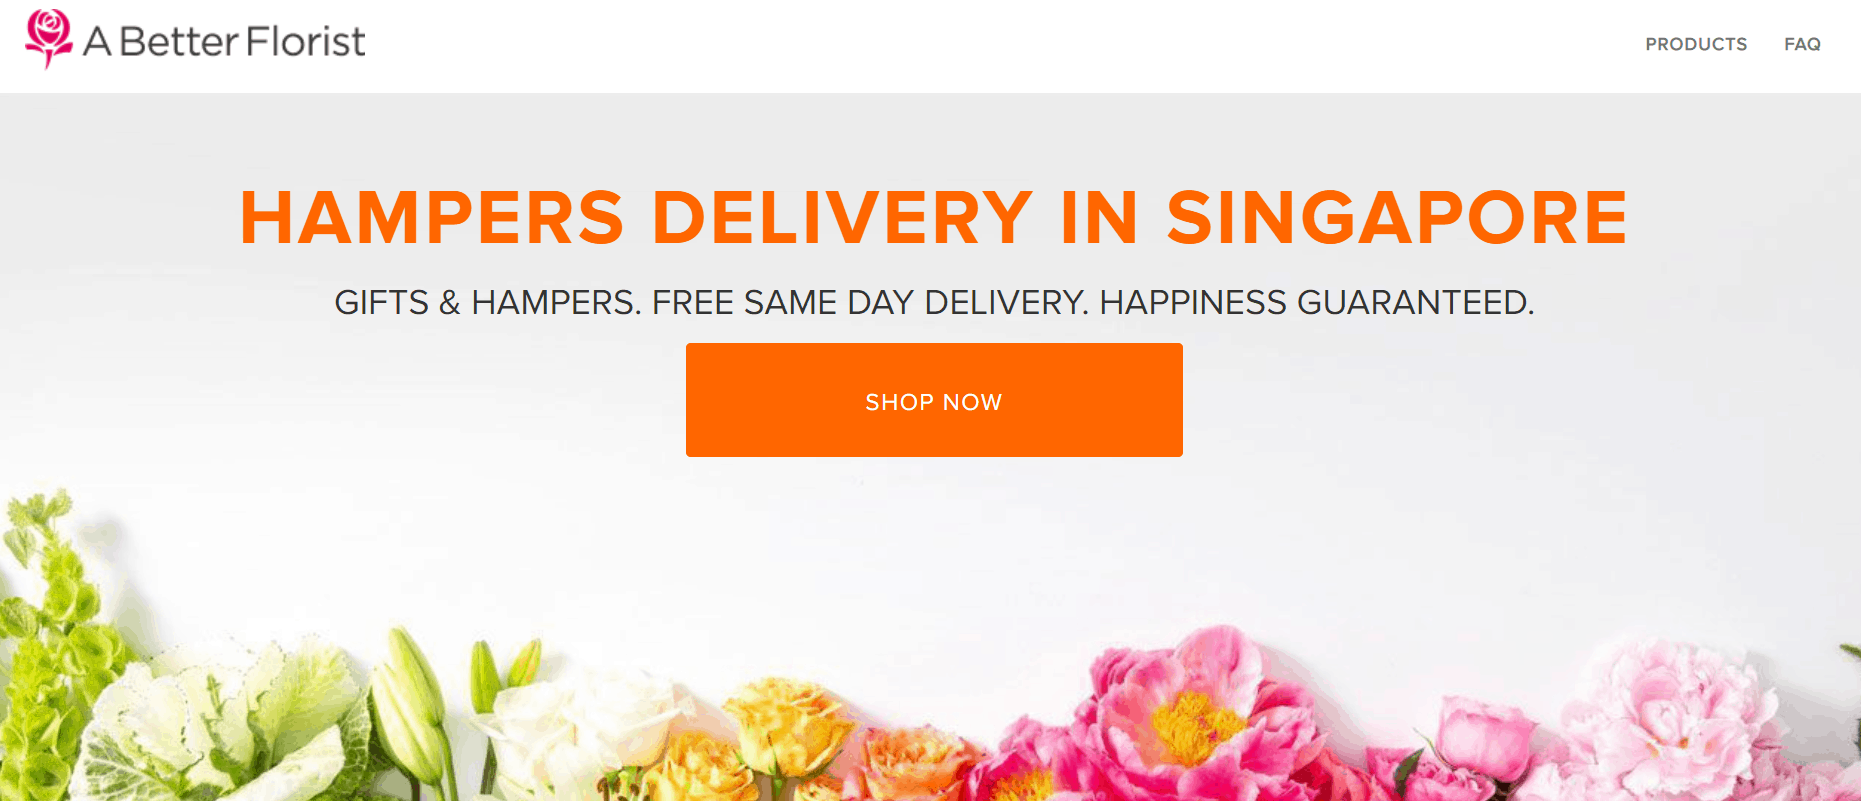 A Better Florist Hamper and flowers is the best gift from Singapore